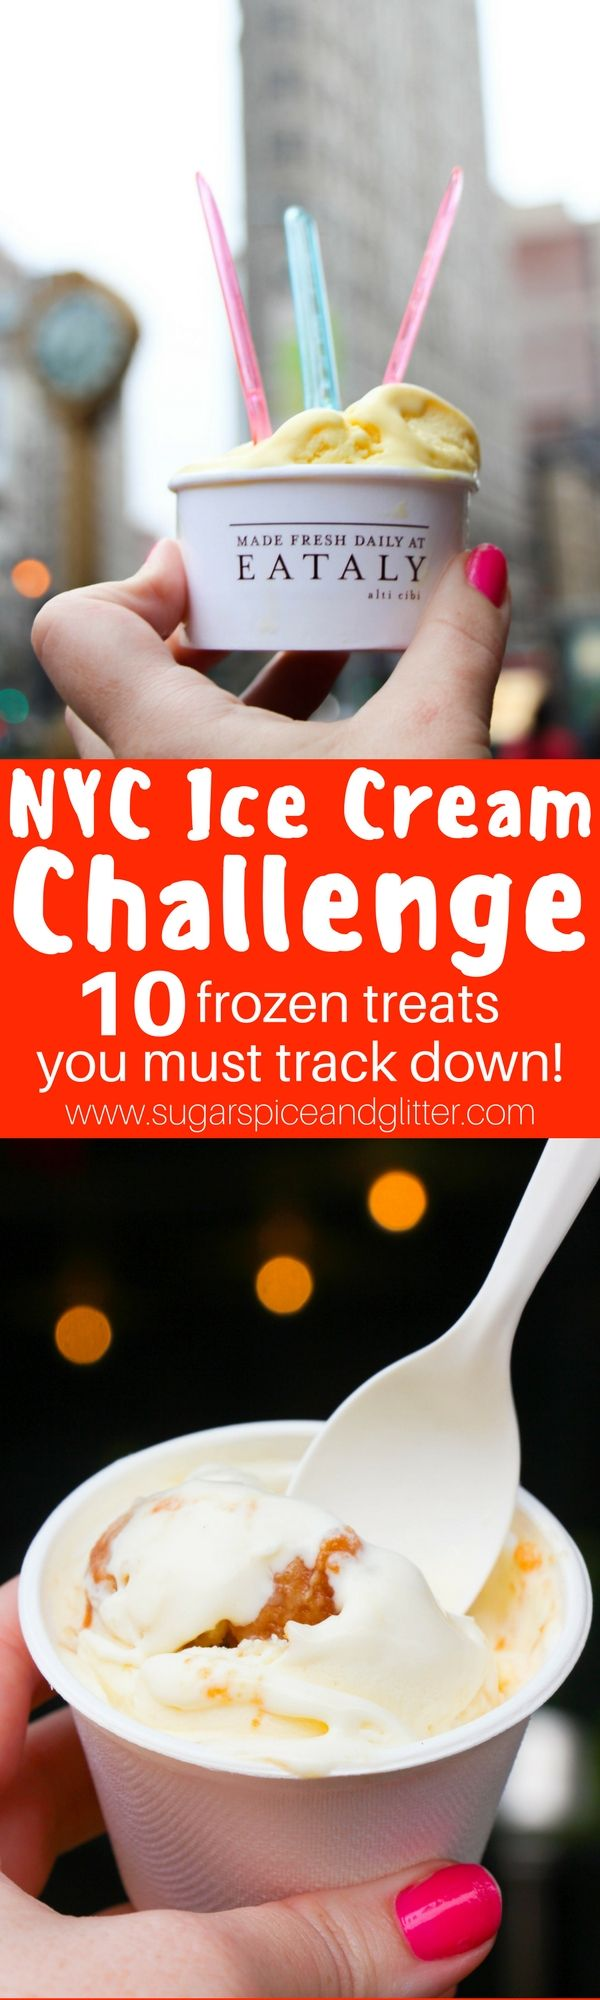 "NYC Ice Cream Tour (Self-Guided) - 10 frozen treats you must eat and 7 other ""extra credit"" options. Frozen hot chocolate, rolled ice cream, and more!"